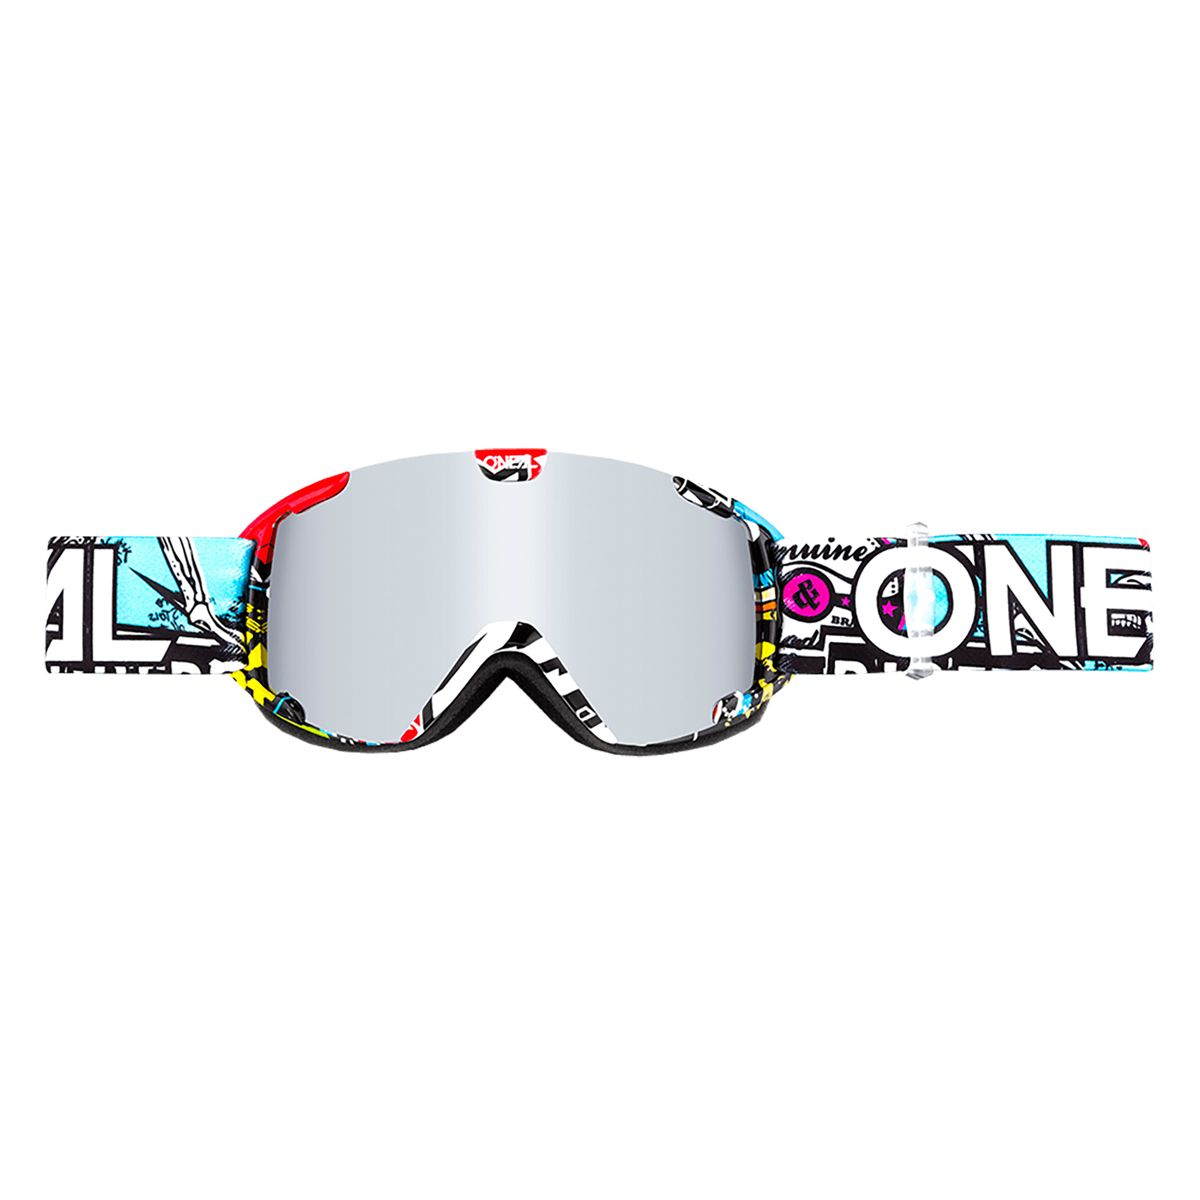 B-30 CRANK youth goggles